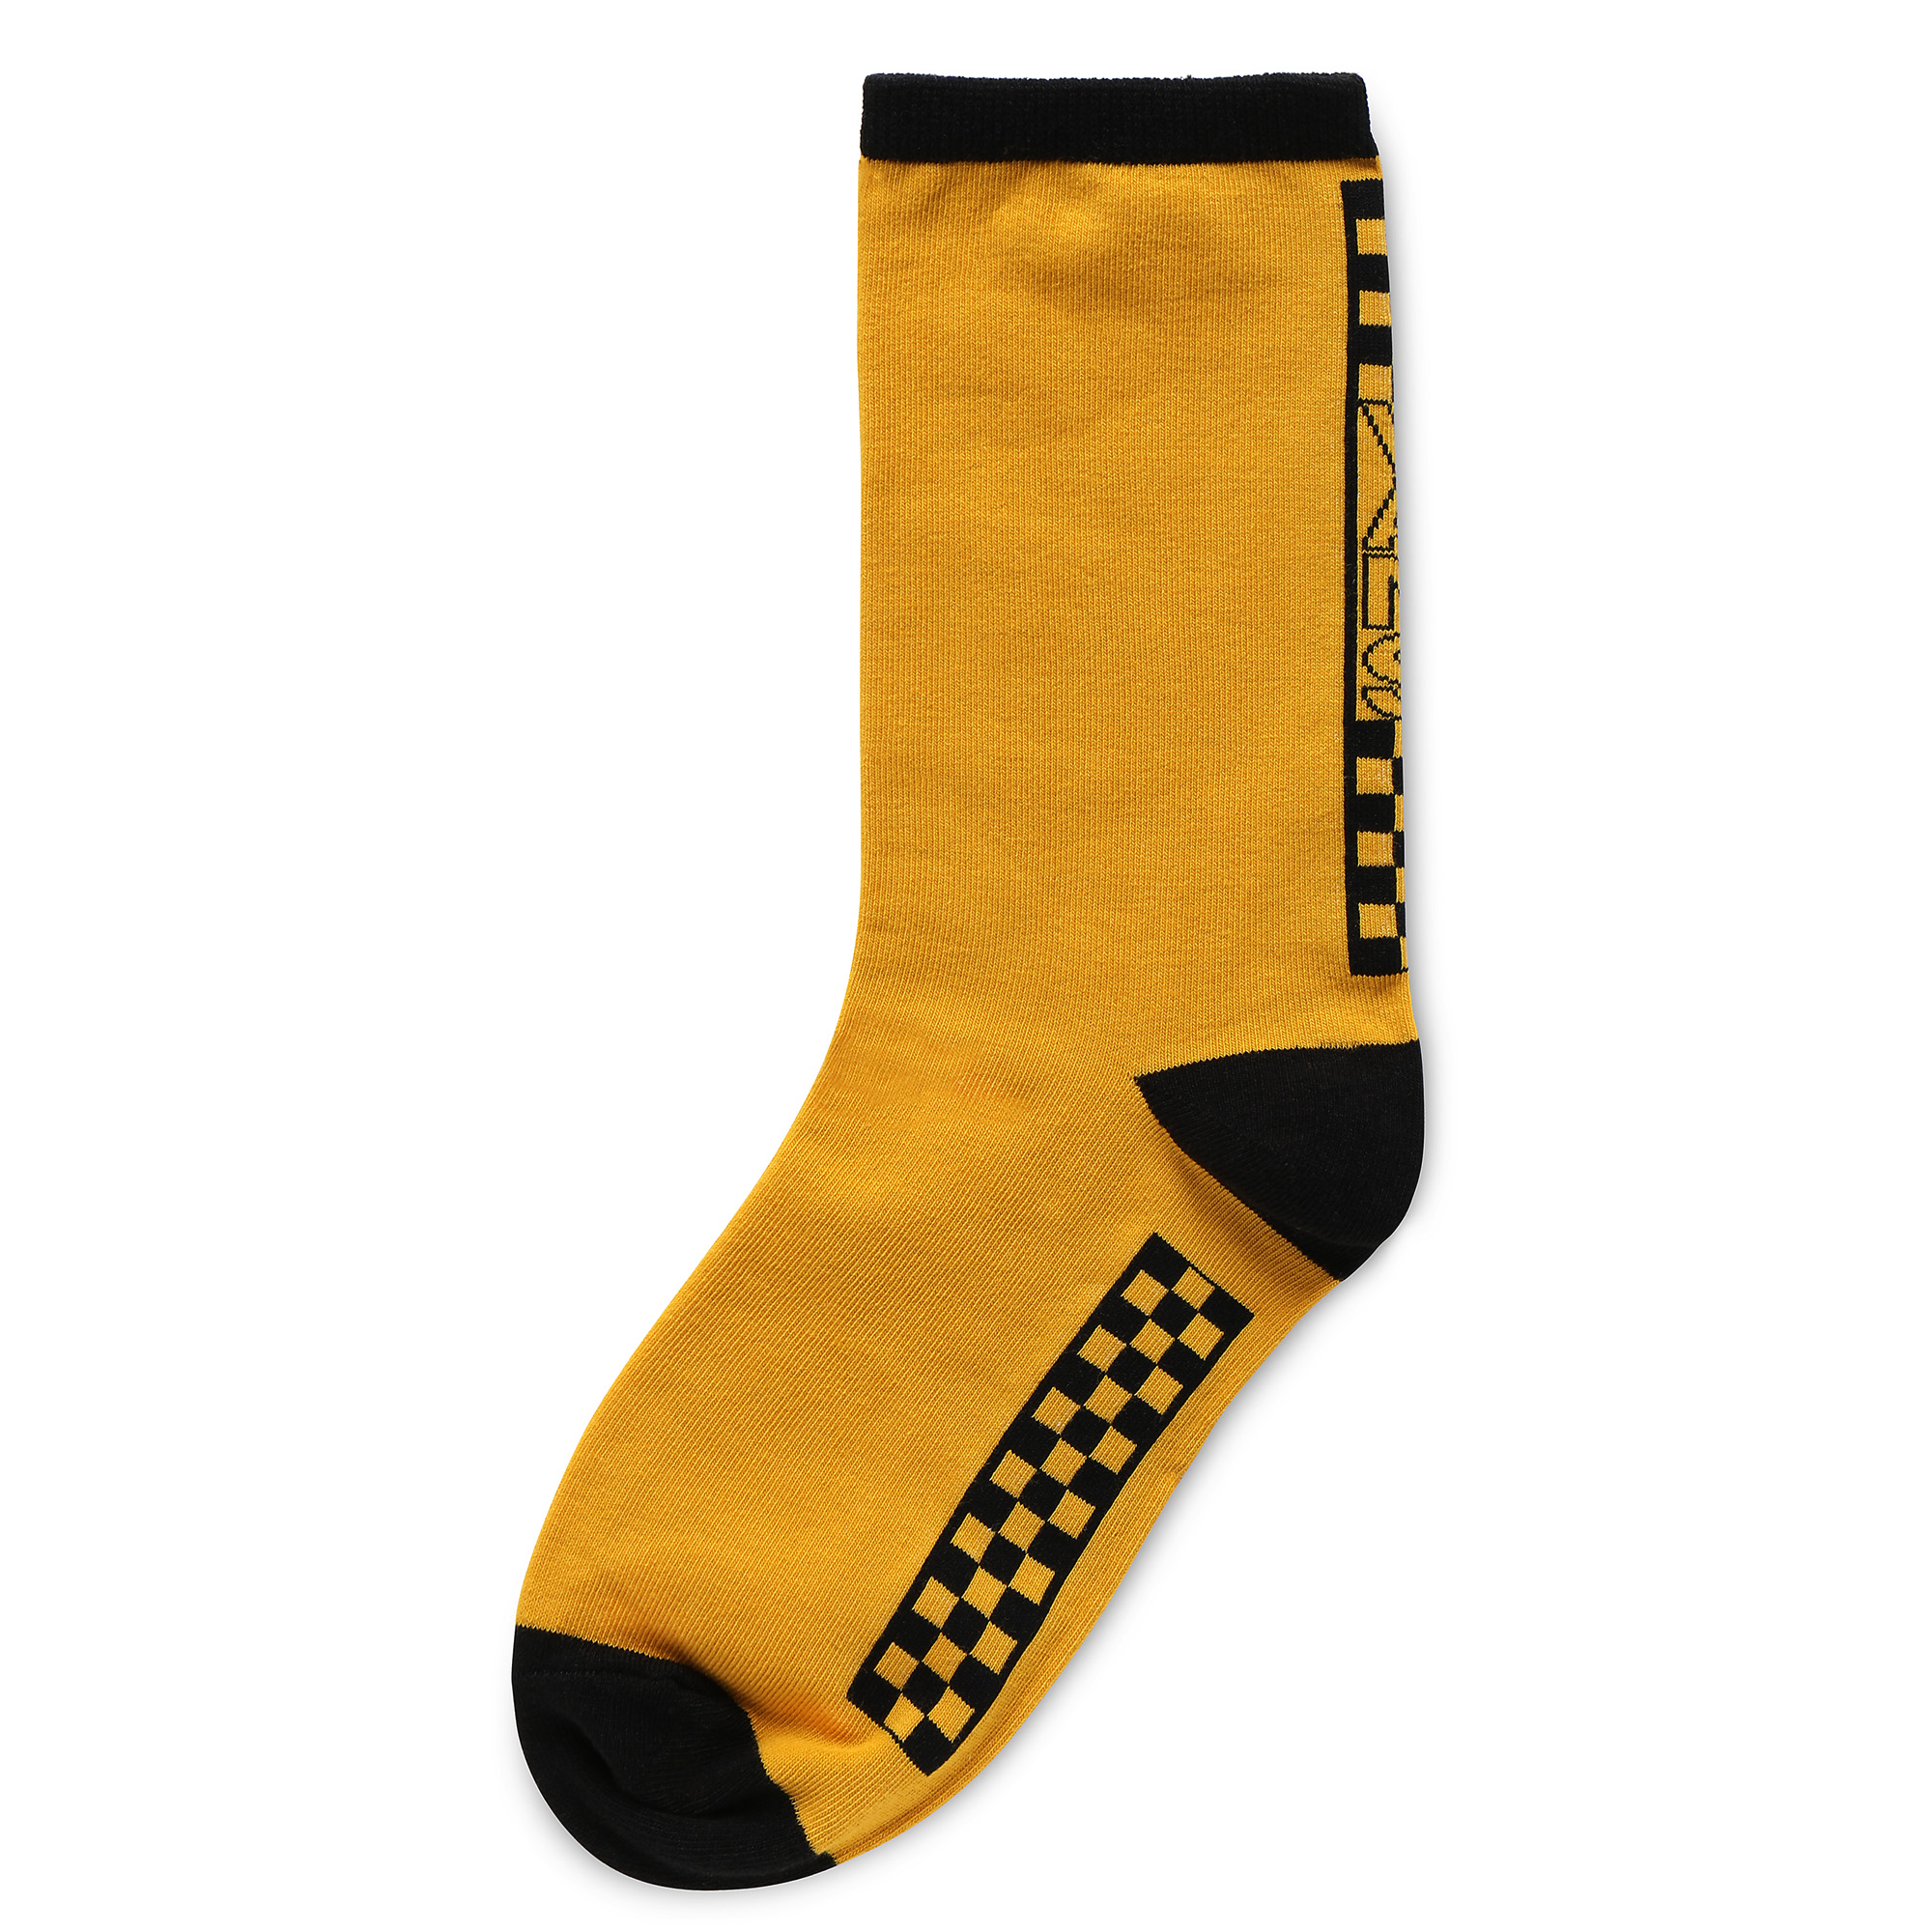 Носки The Ticker Socks (1 пара) VANS